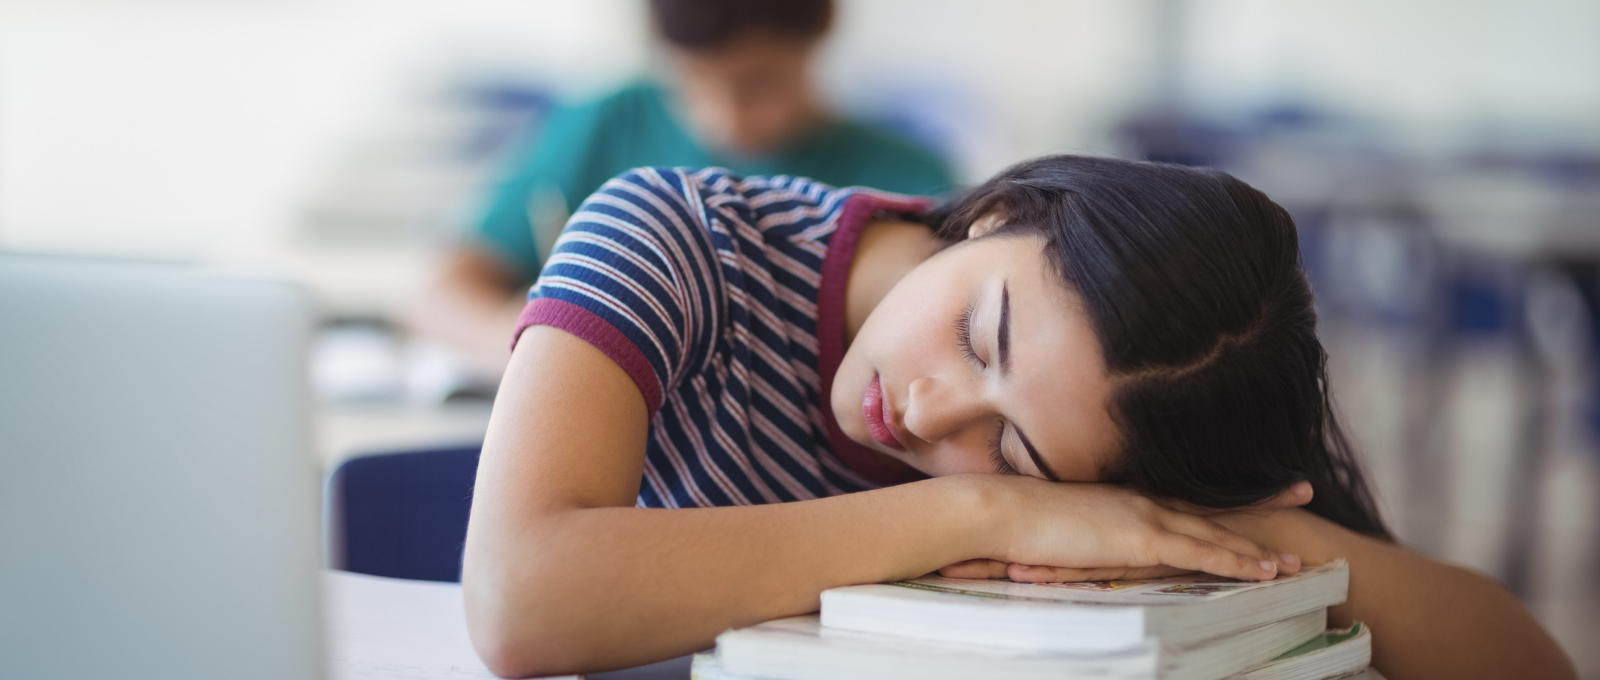 Teenager sleeping at desk on a pile of books at school